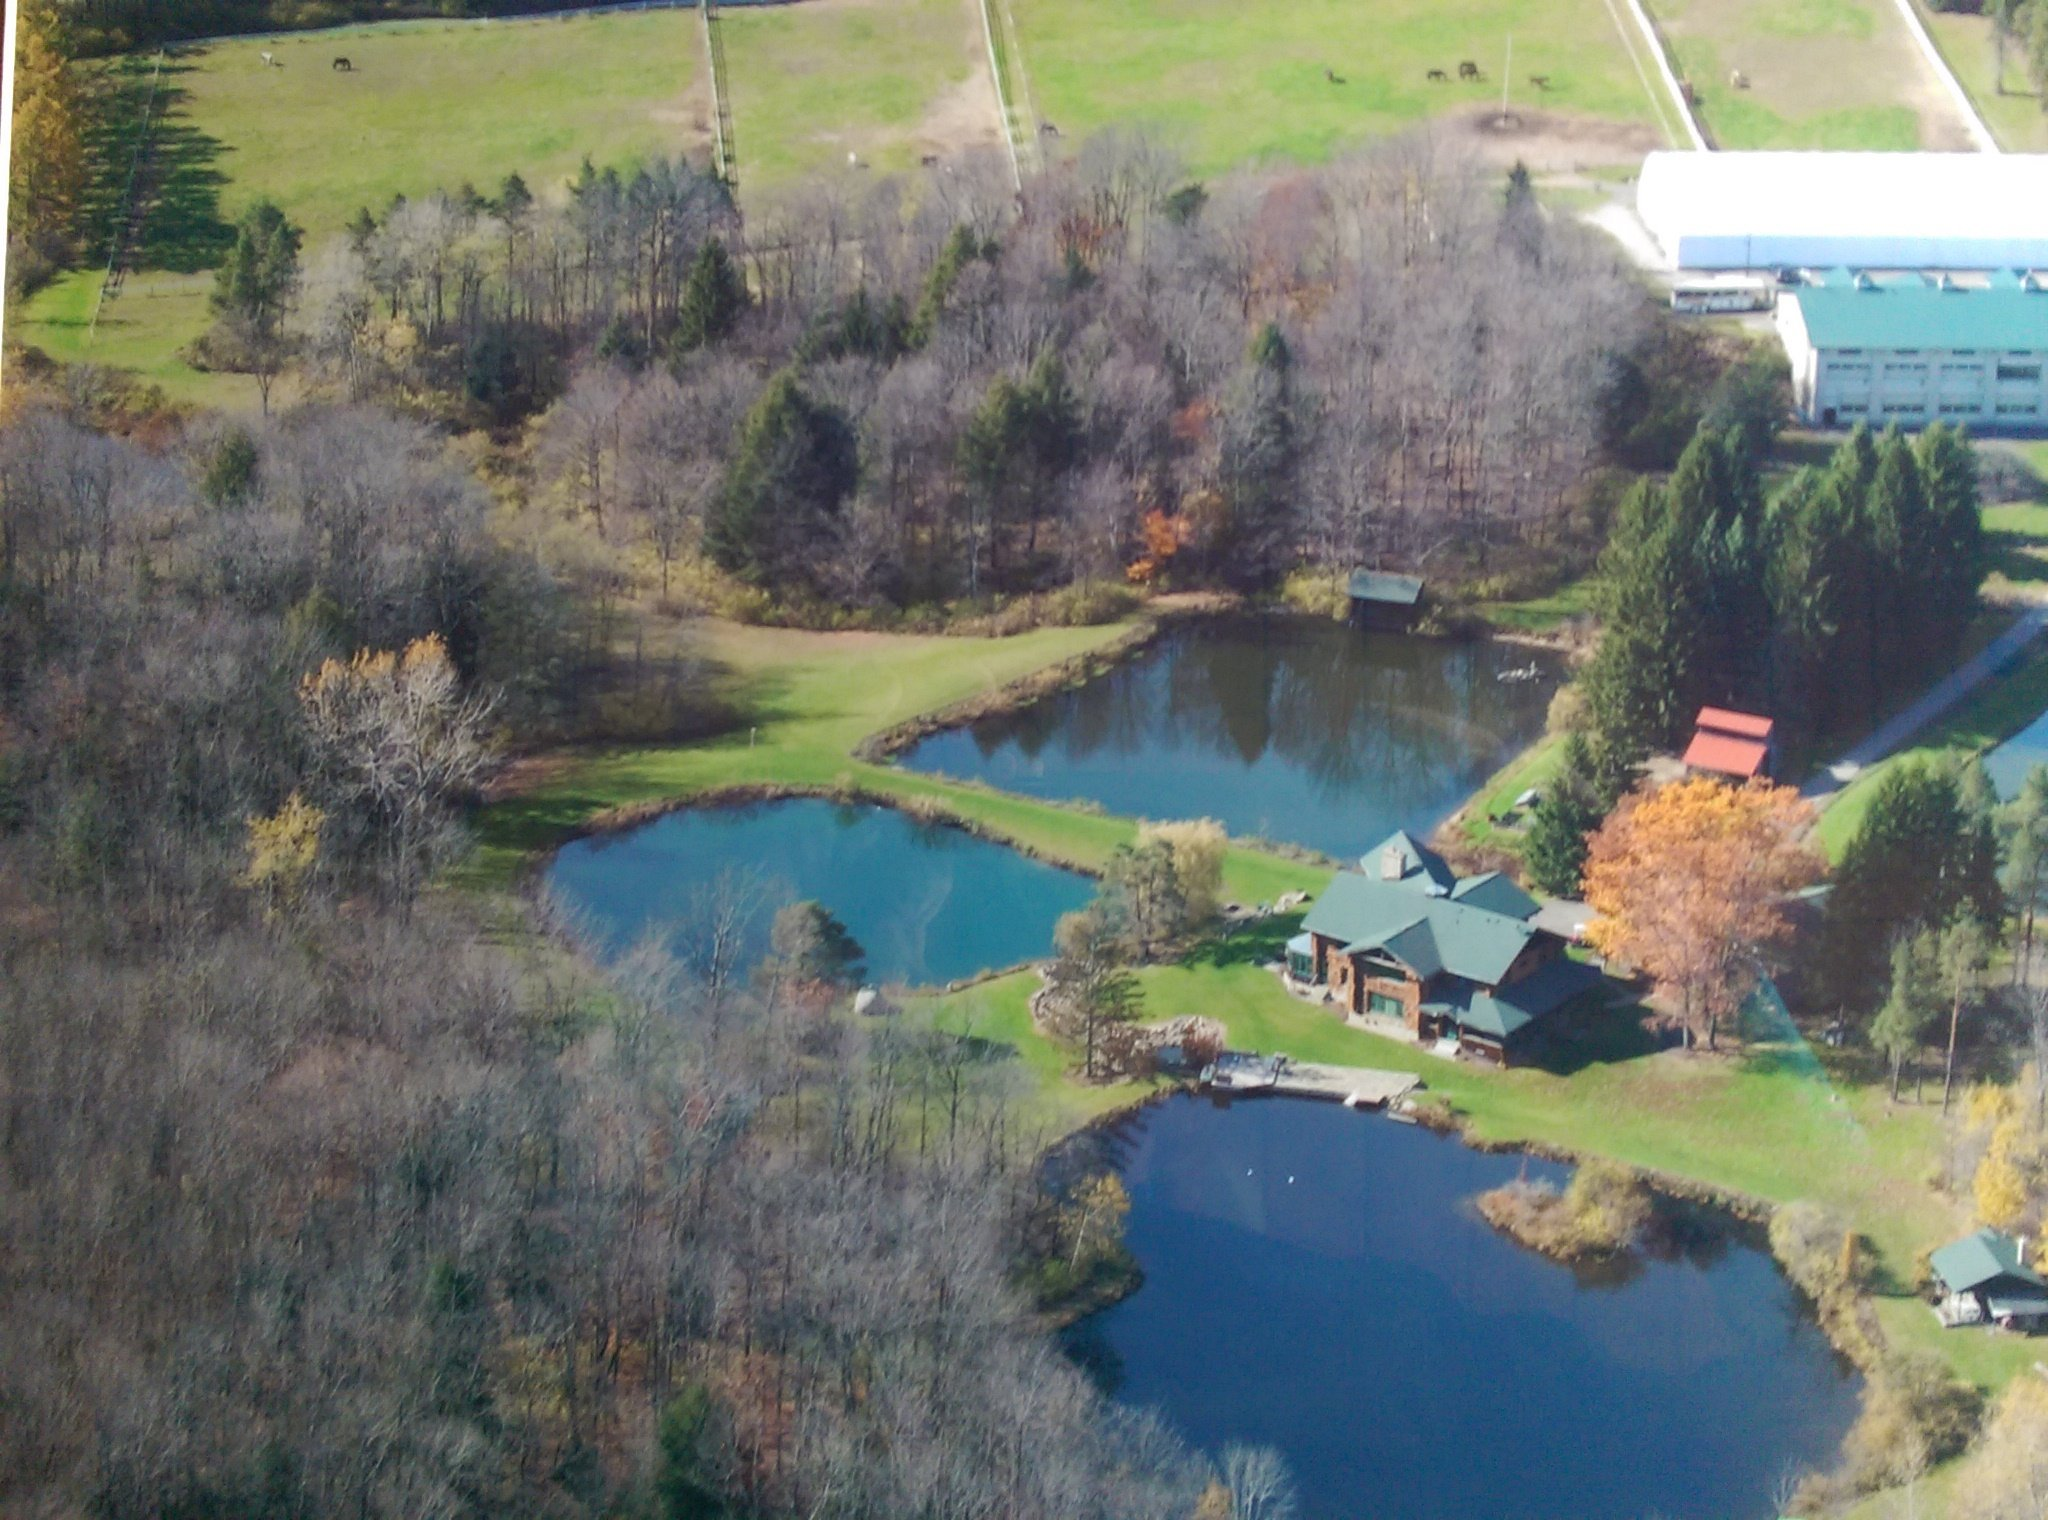 Rosebud Stables Summer Camp Aerial view